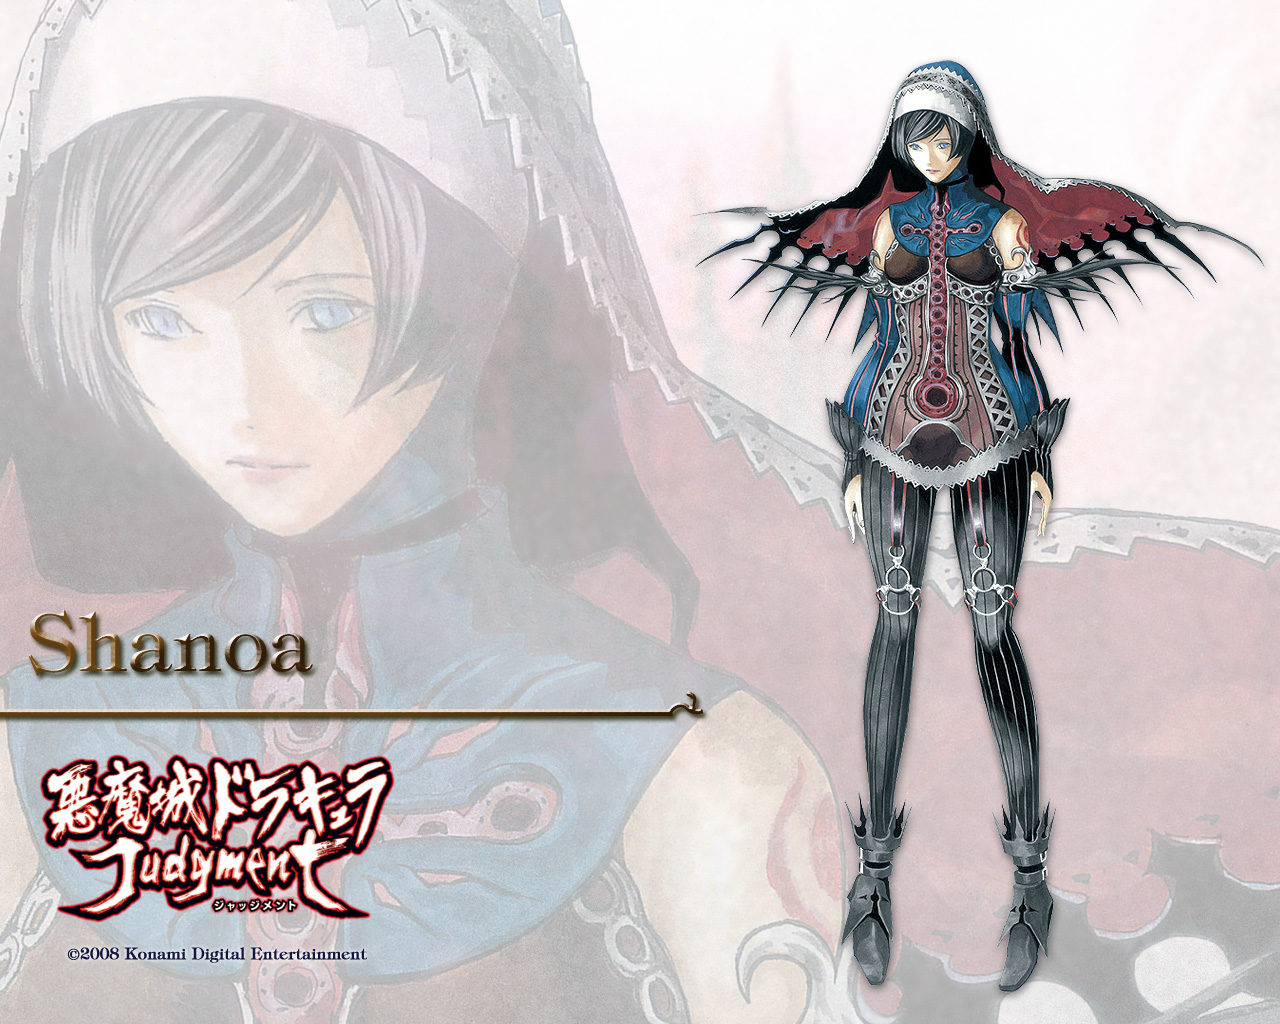 Shanoa Castlevania Order Of Ecclesia Wallpaper 231235